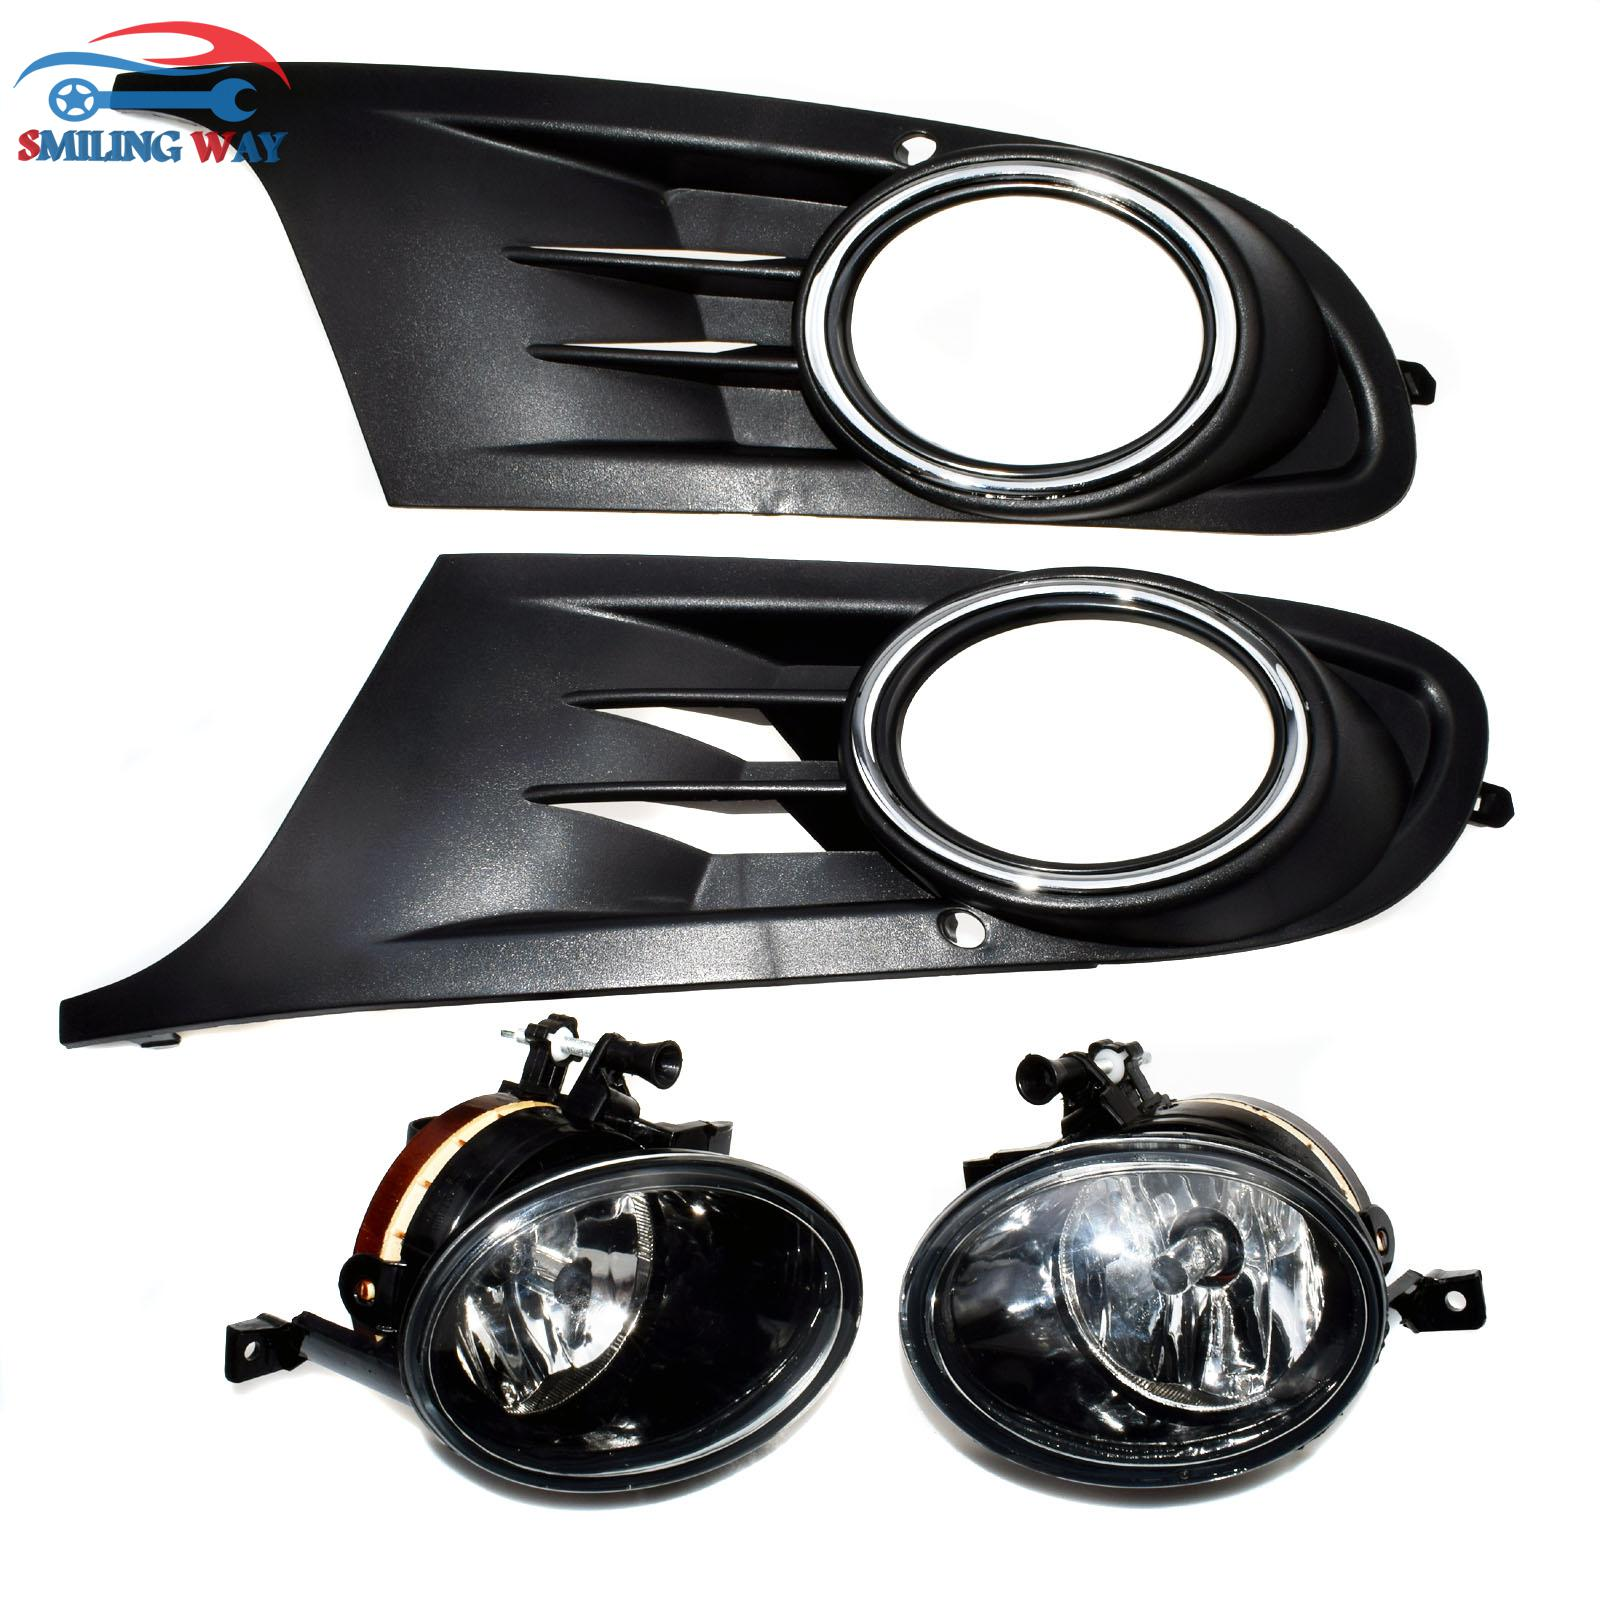 Top 9 Most Popular Vw Touran Lampe Ideas And Get Free Shipping 079aj6bk